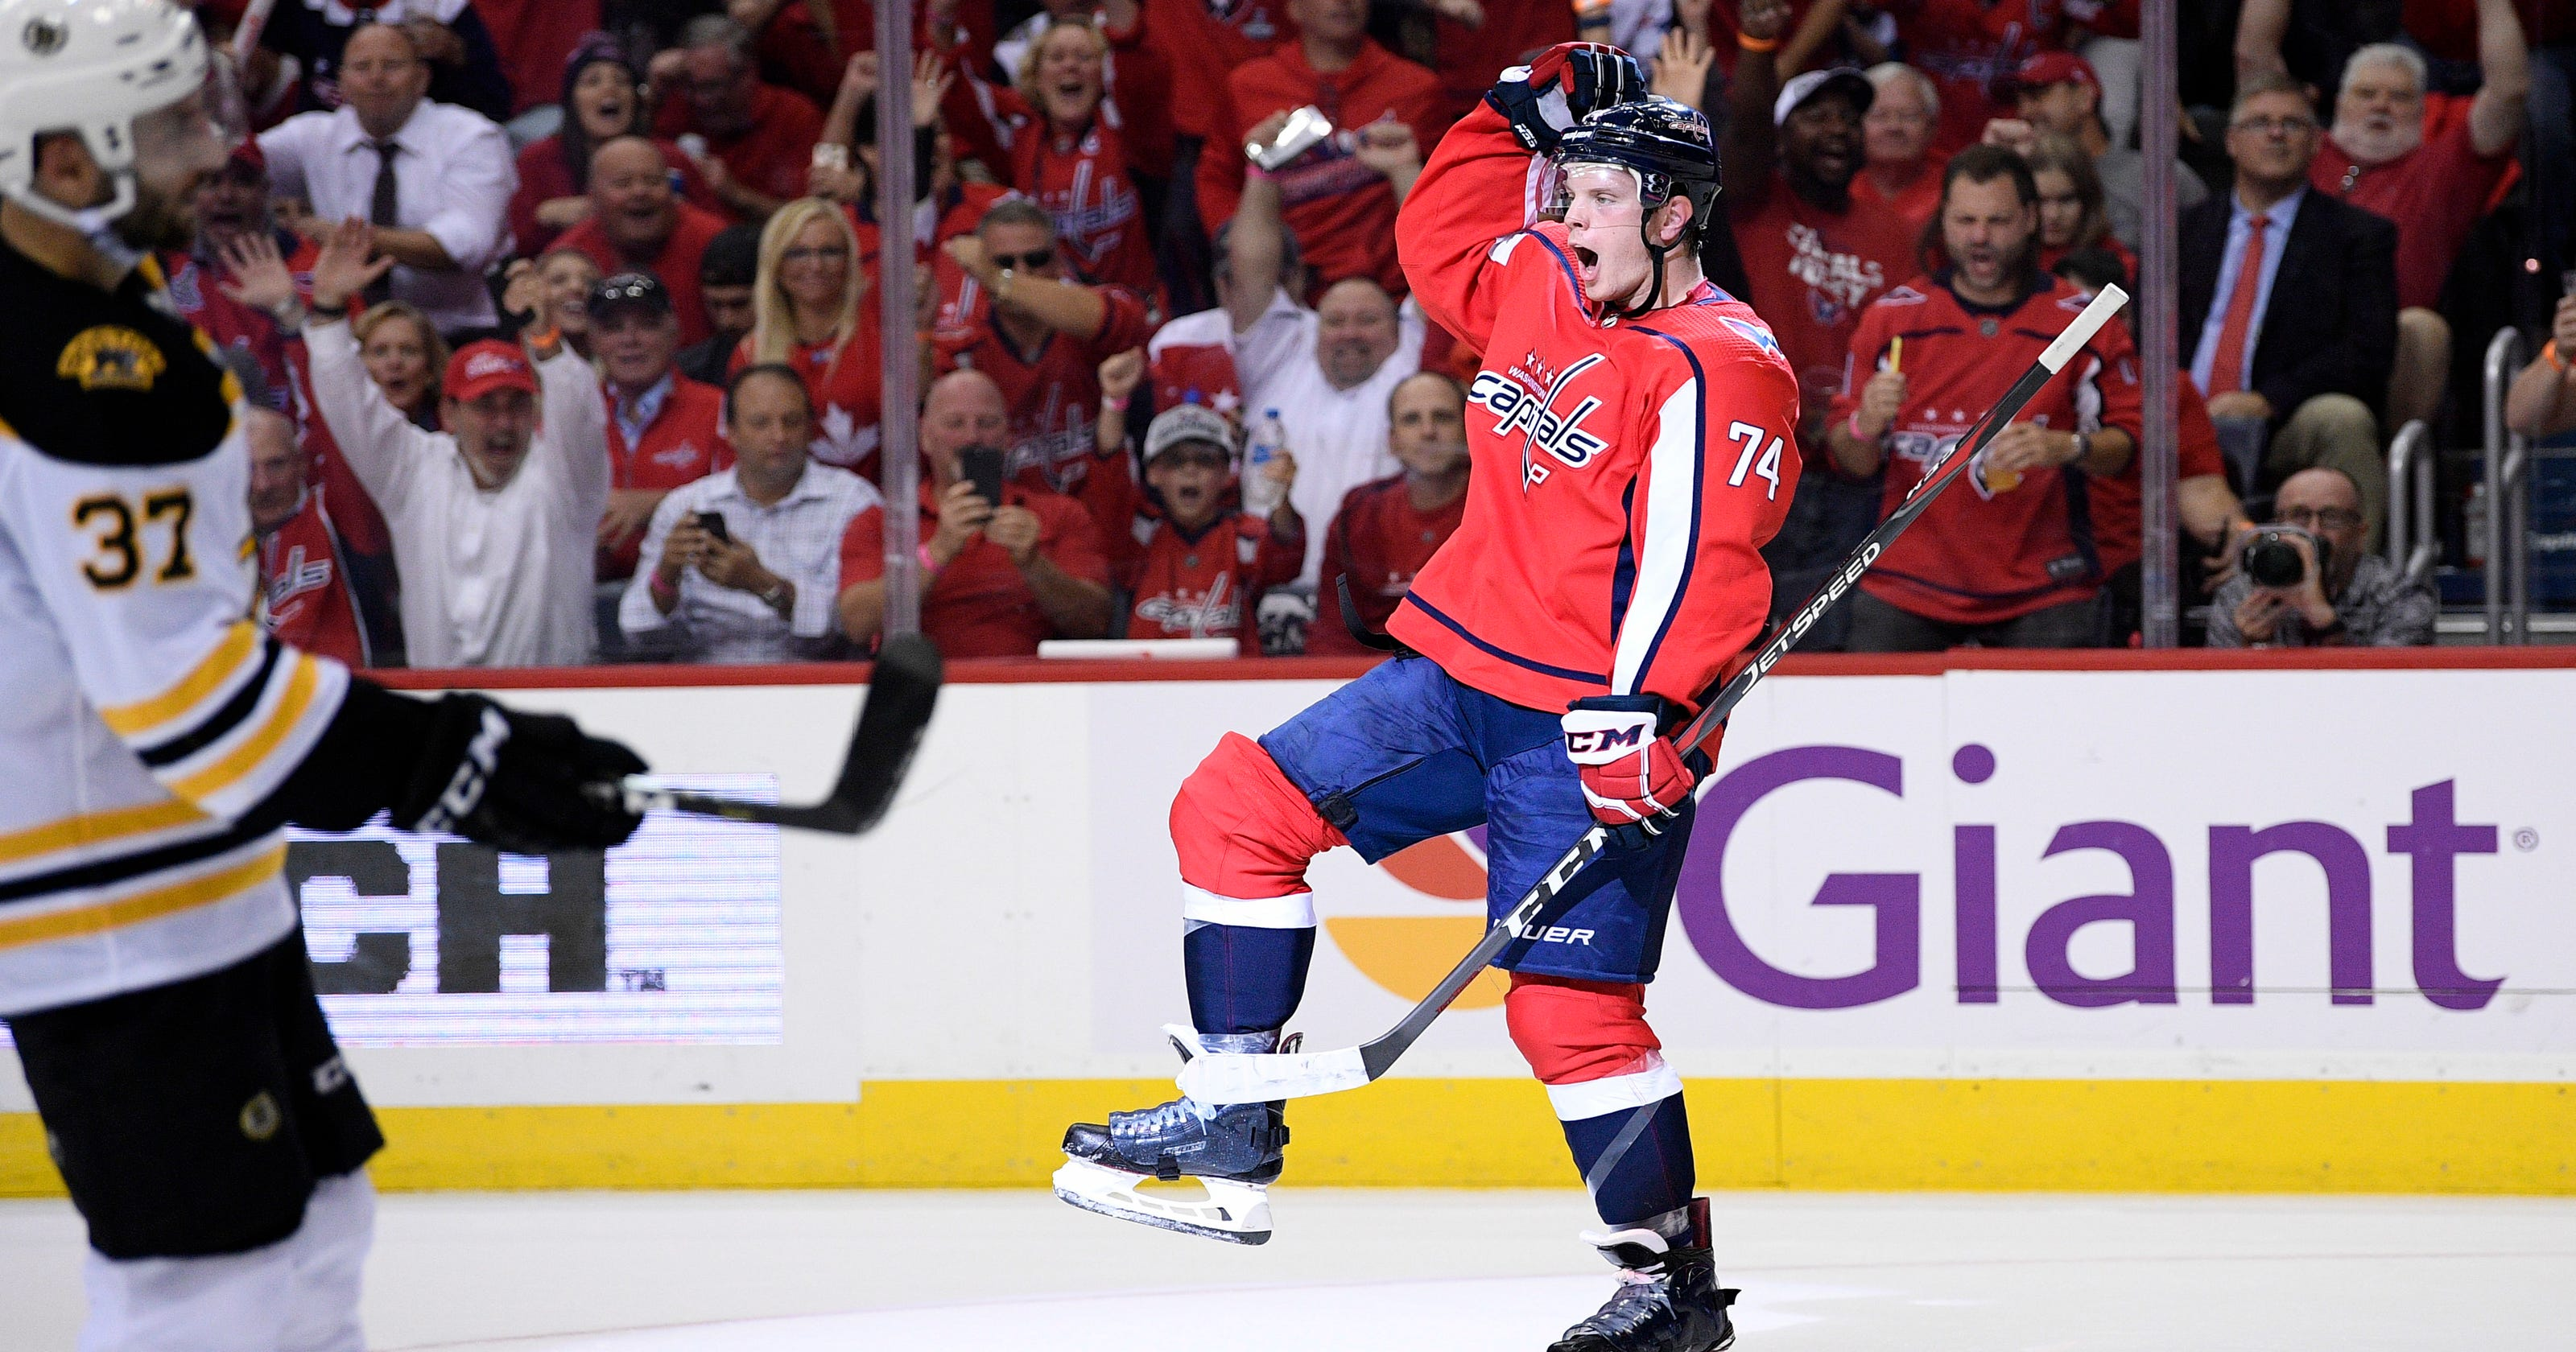 Capitals open Stanley Cup defense with 7-0 rout of Bruins 8b6796b6a9f